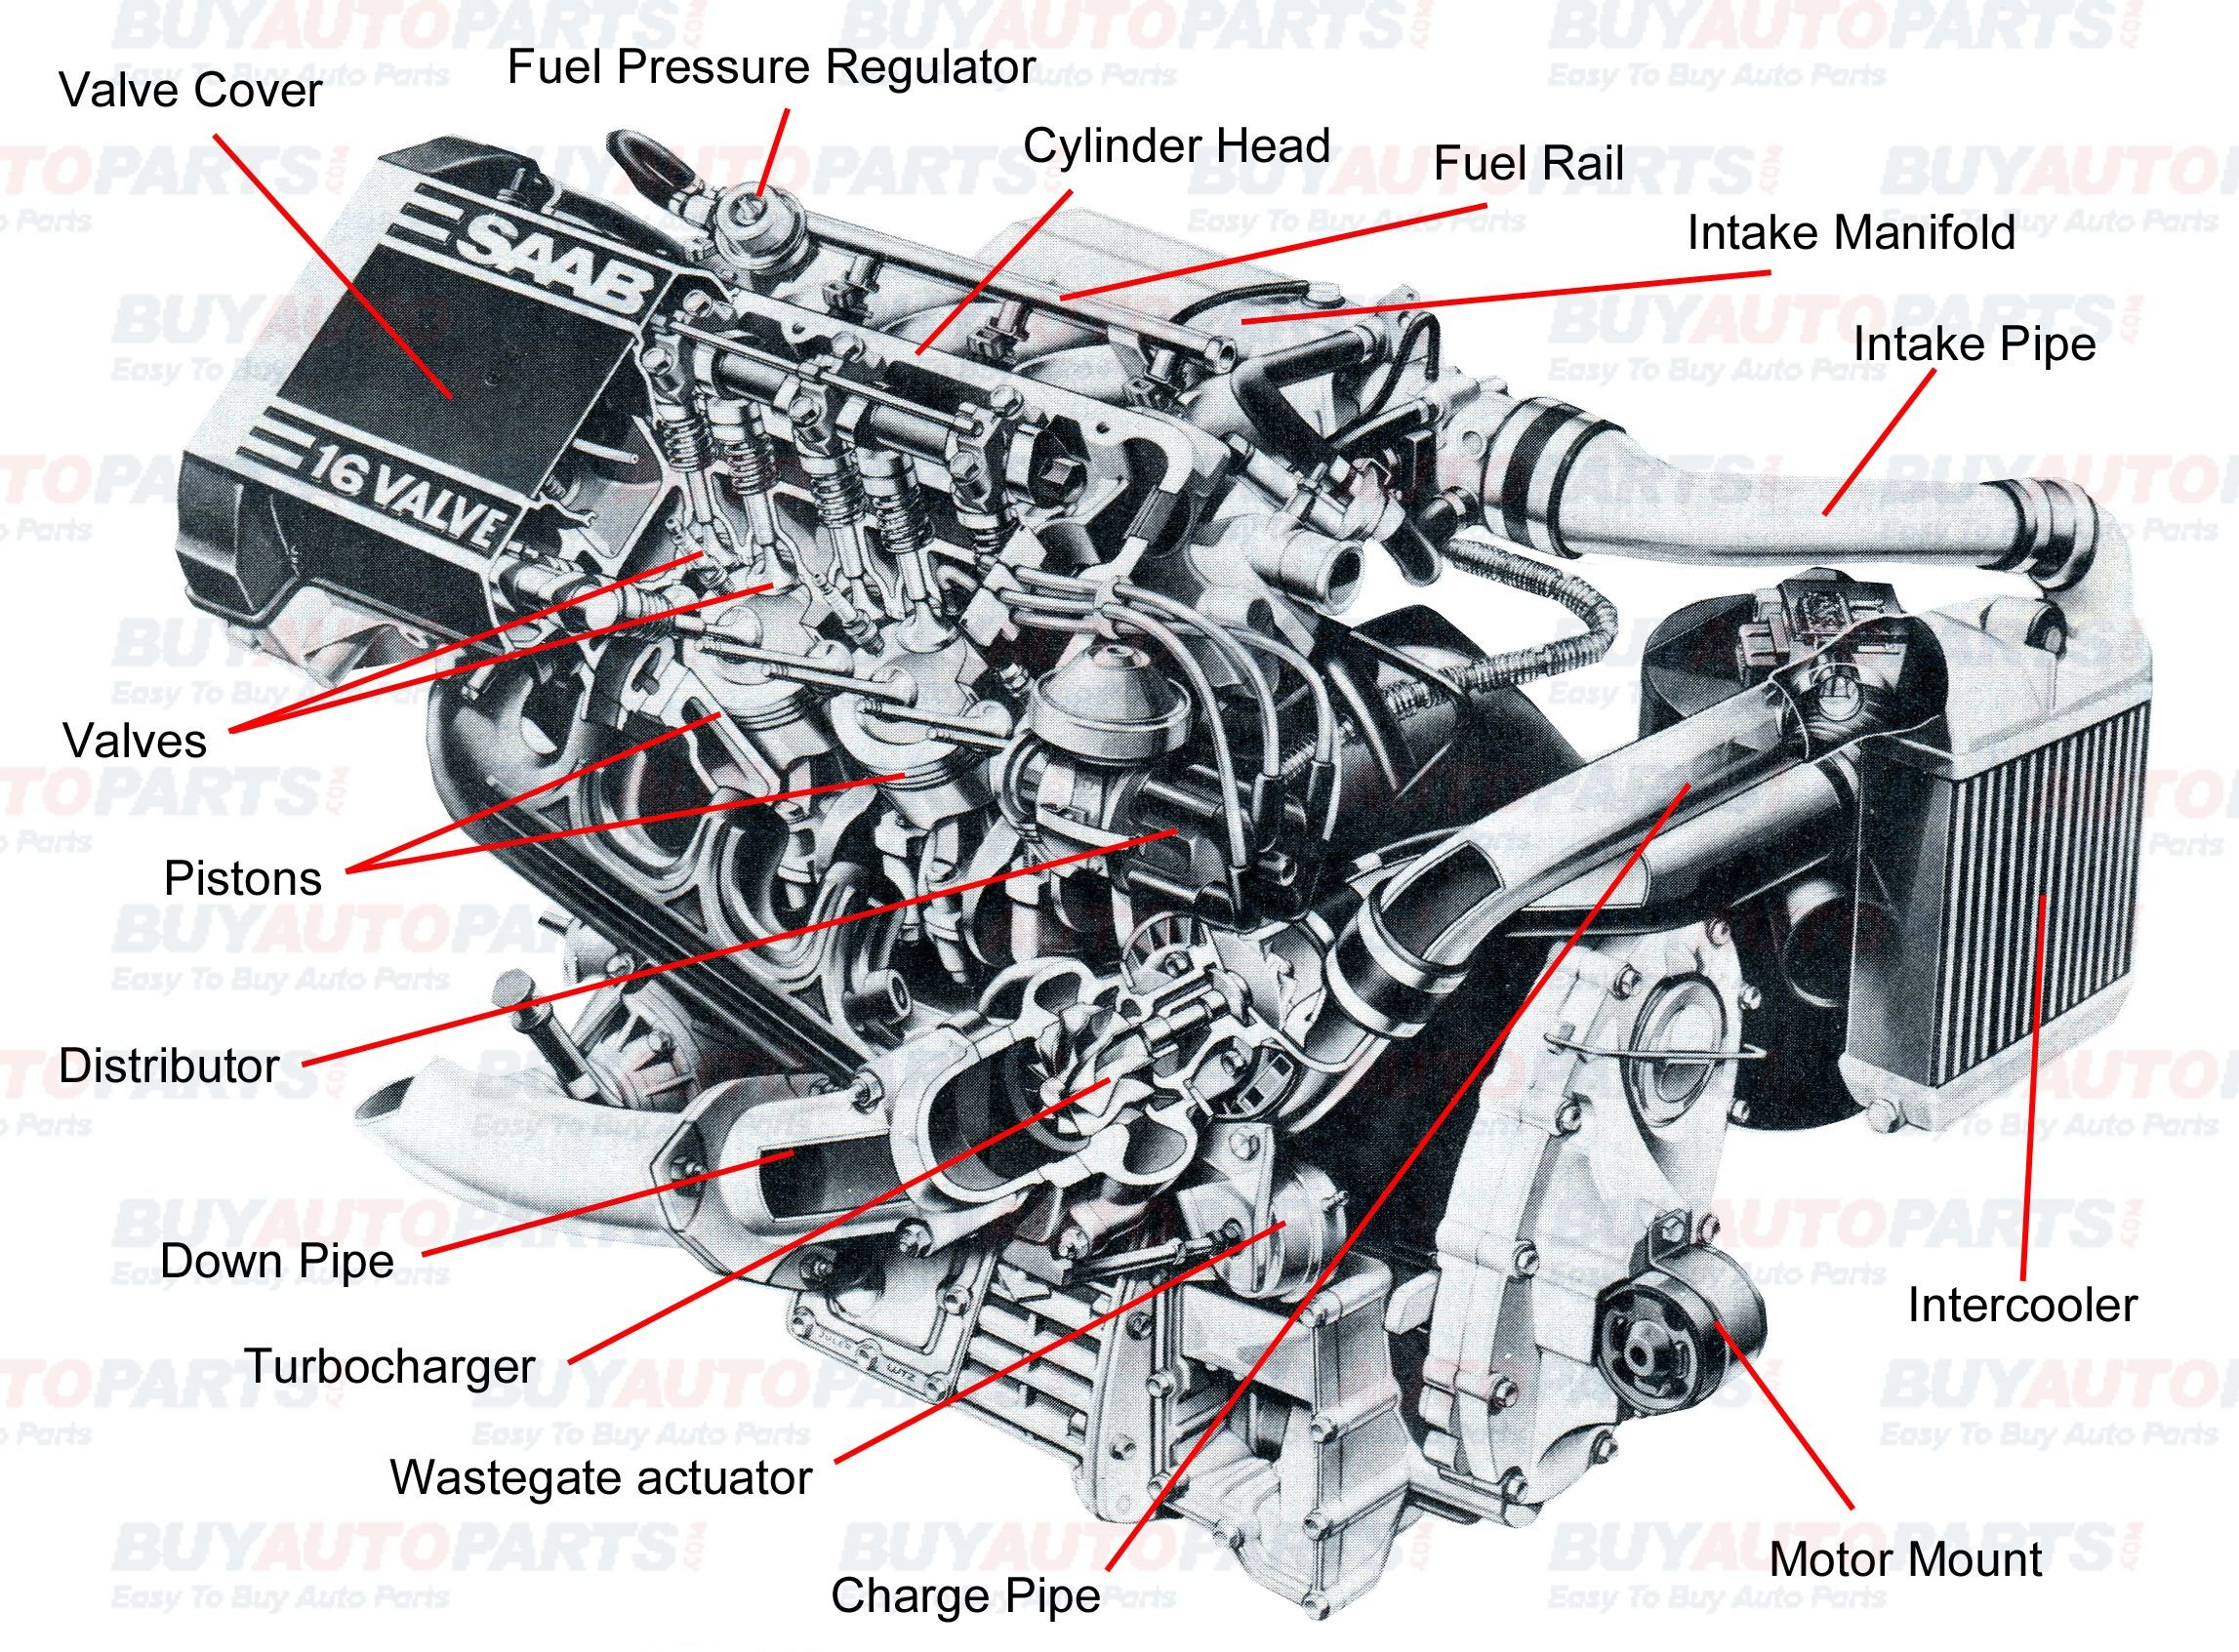 Diagram Of Car Part All Internal Bustion Engines Have the Same Basic Ponents the